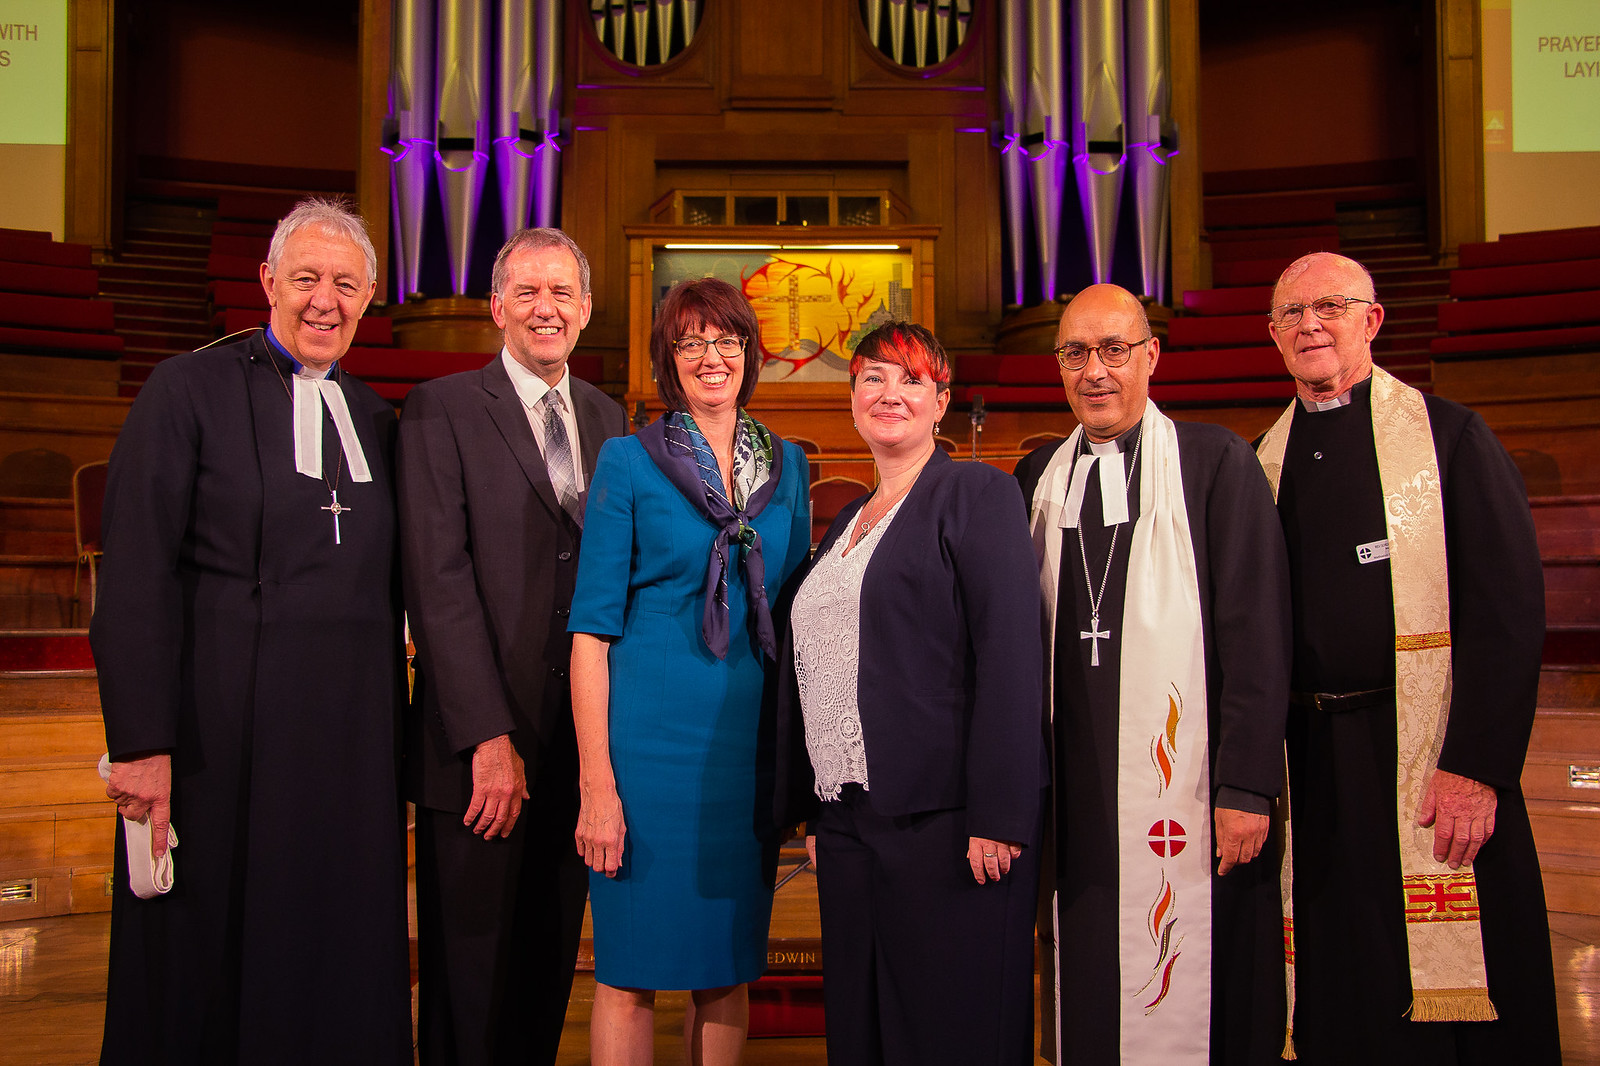 Visit of the Vice President of Conference & Welcome to Deacon Ali and Alison Bryan